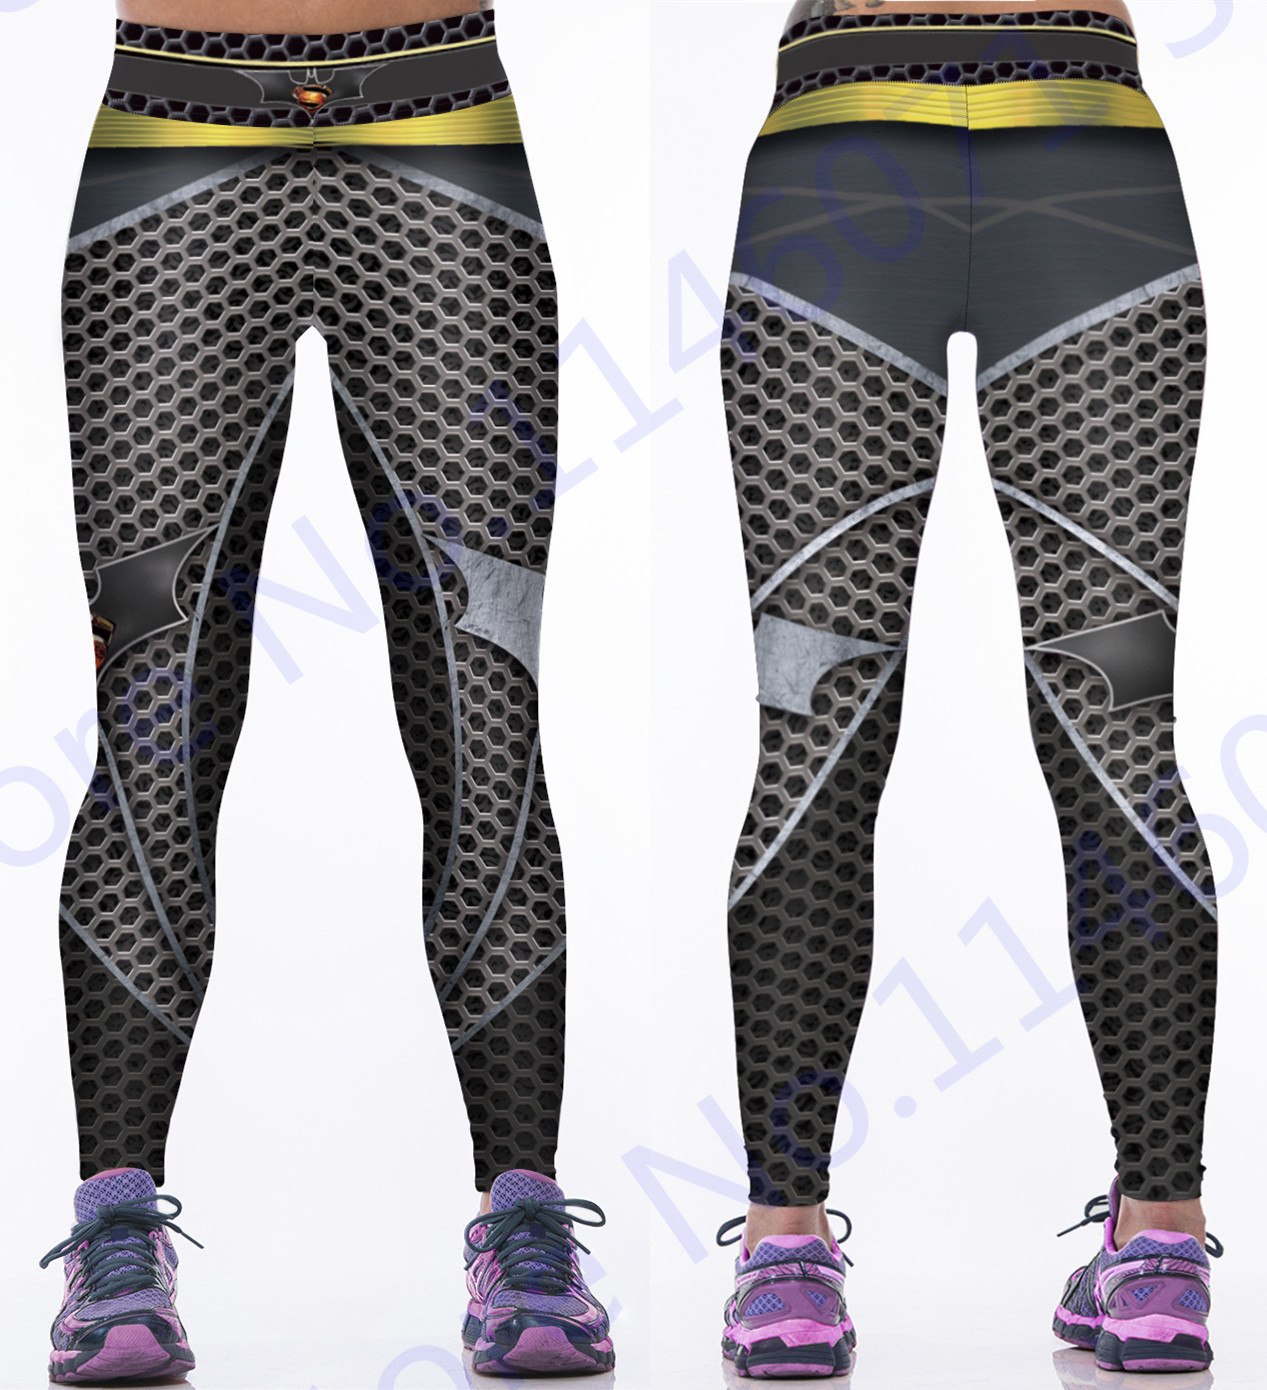 Prix pour 3D Batman V Superman Sport Yoga Jeggings L'aube De Justice Impression Noir De Yoga Pantalon Gris Femmes Fitness Collants Batman Leggings